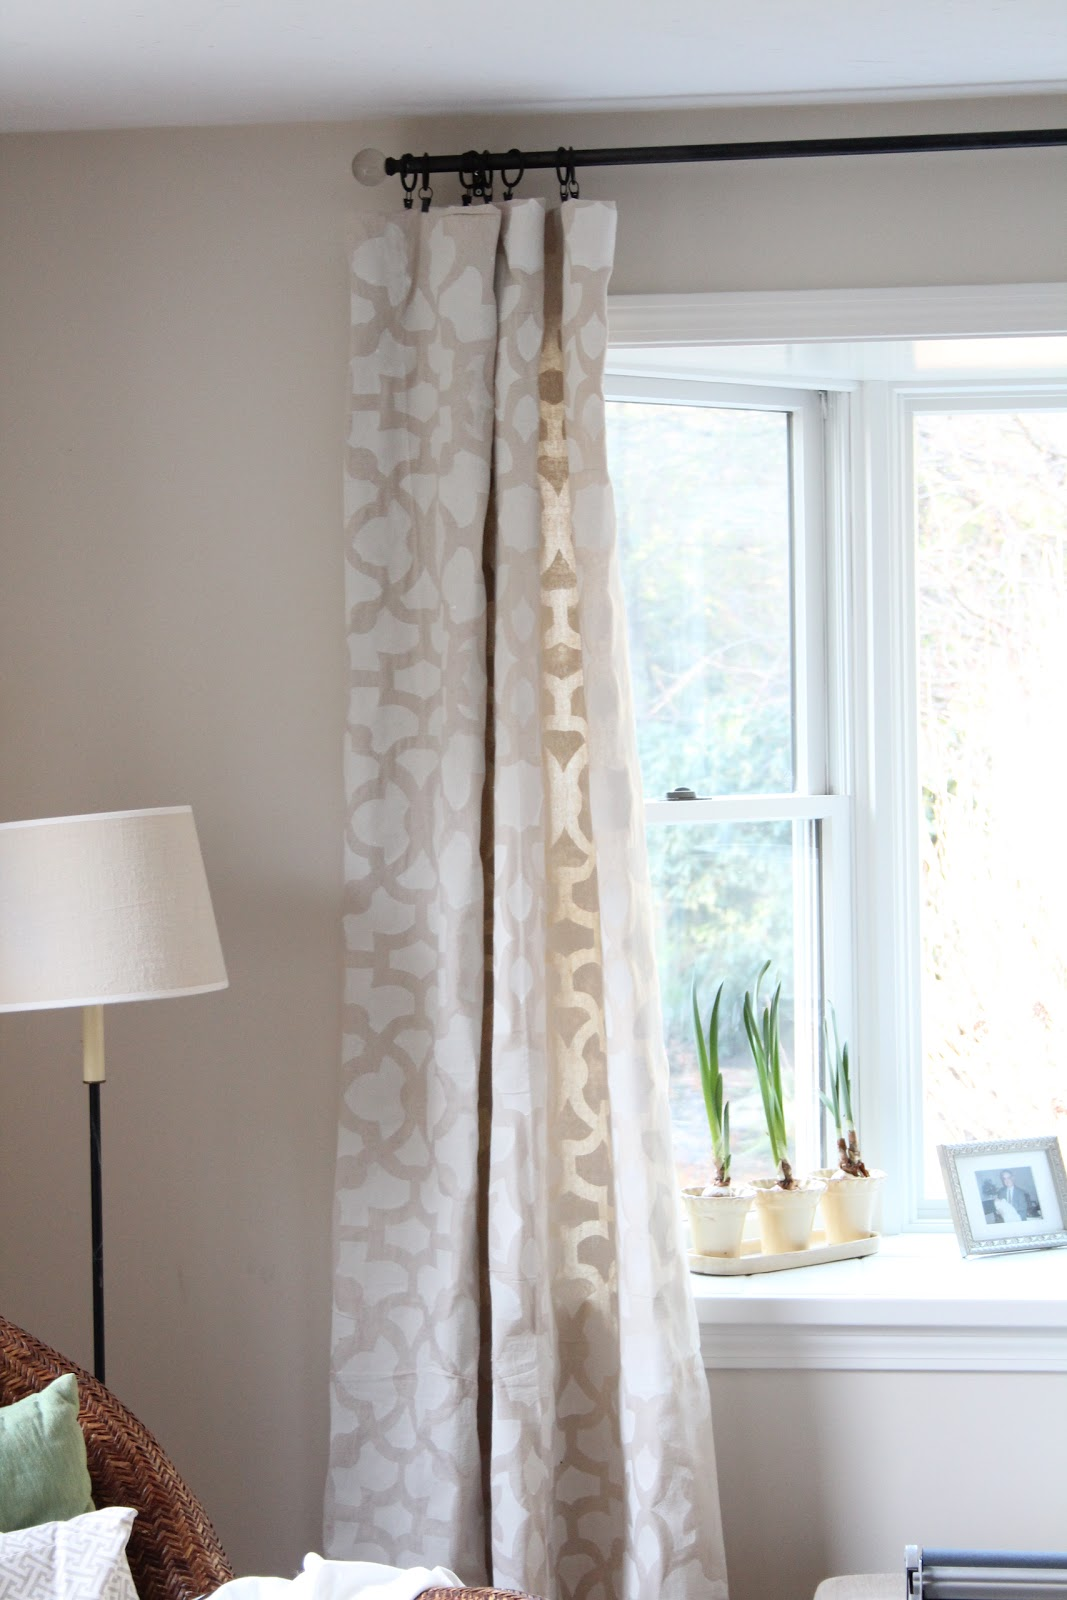 We used simple curtain clips to attach the drop cloths - Stenciled Drop Cloth Curtains